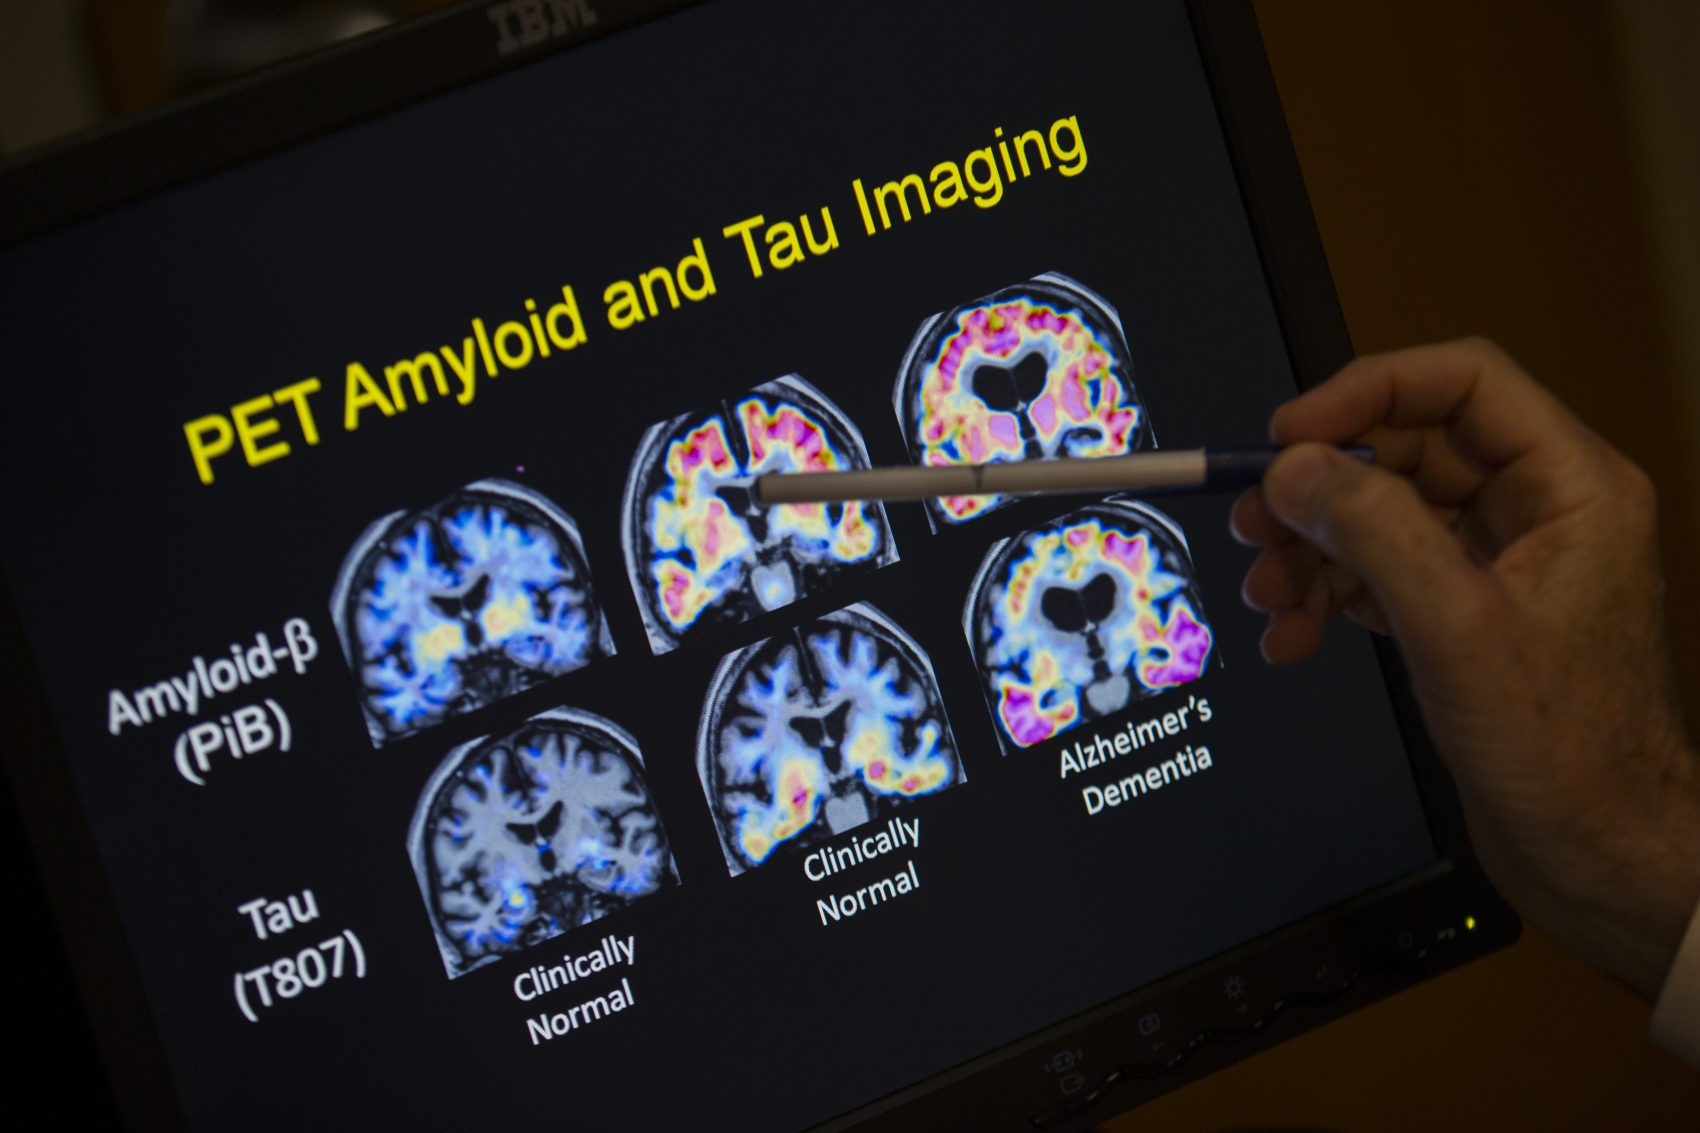 R. Scott Turner, professor of neurology and director of the Memory Disorder Center at Georgetown University Hospital, points to PET scan results that are part of a study on Allheimer's disease on May 19, 2015, in Washington. (Evan Vucci/AP)